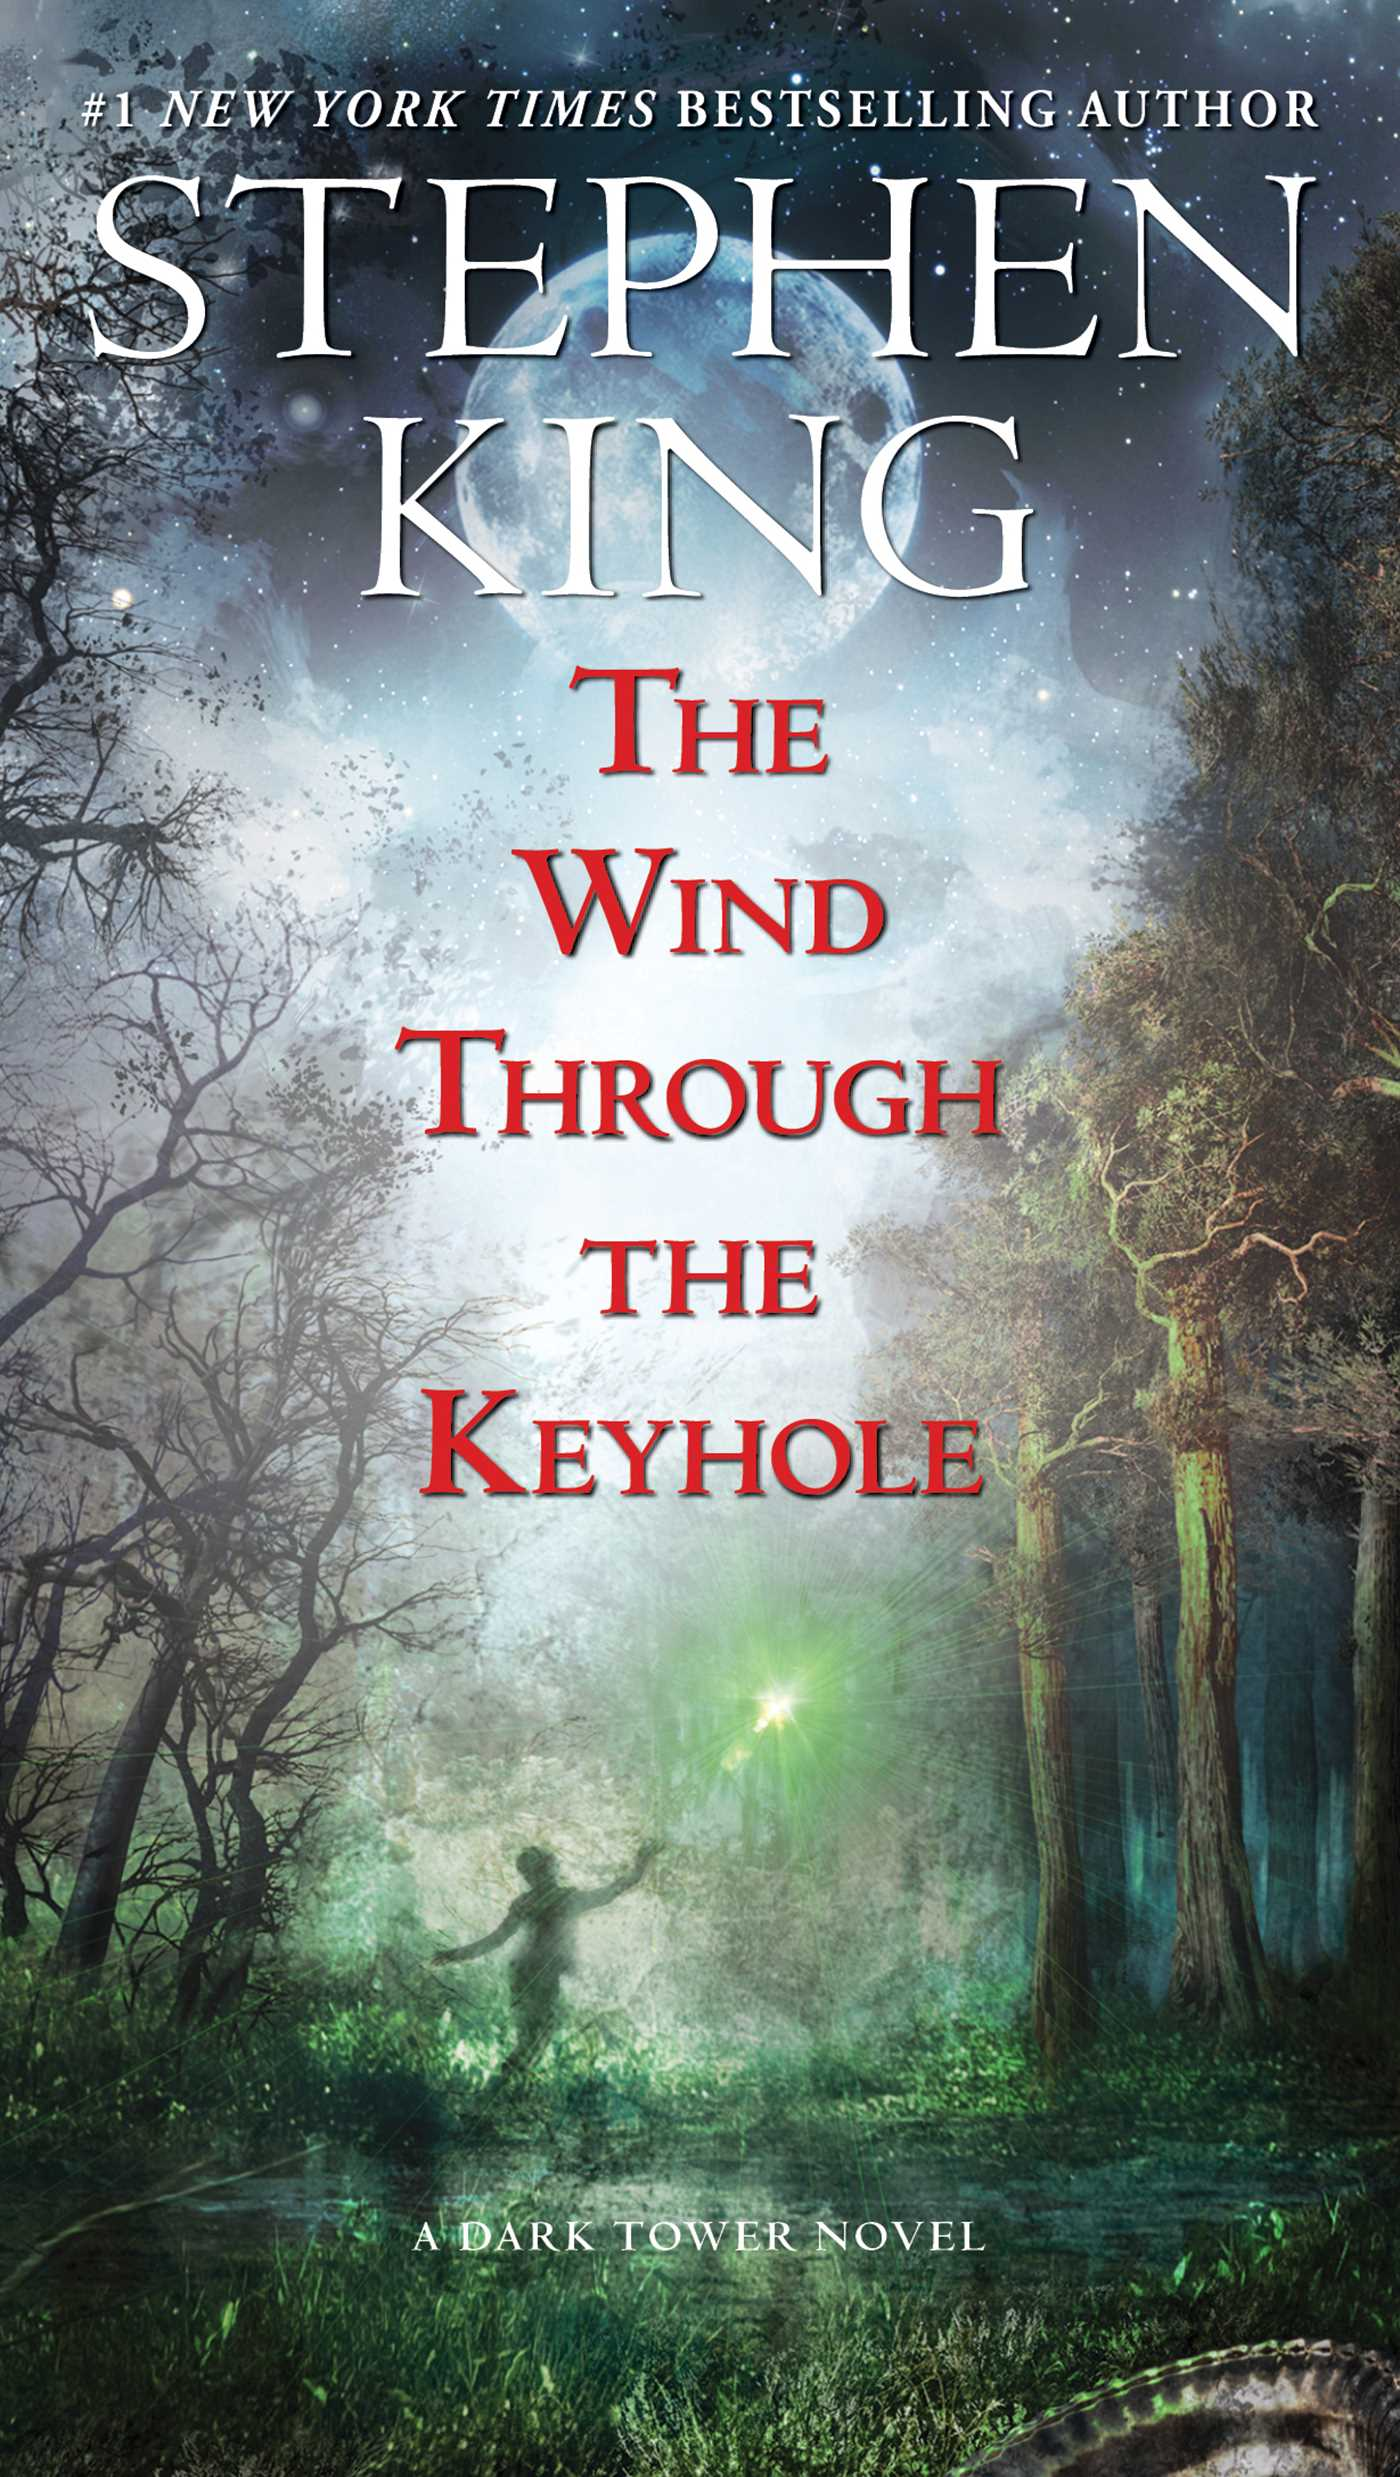 Wind-through-the-keyhole-9781451658927_hr